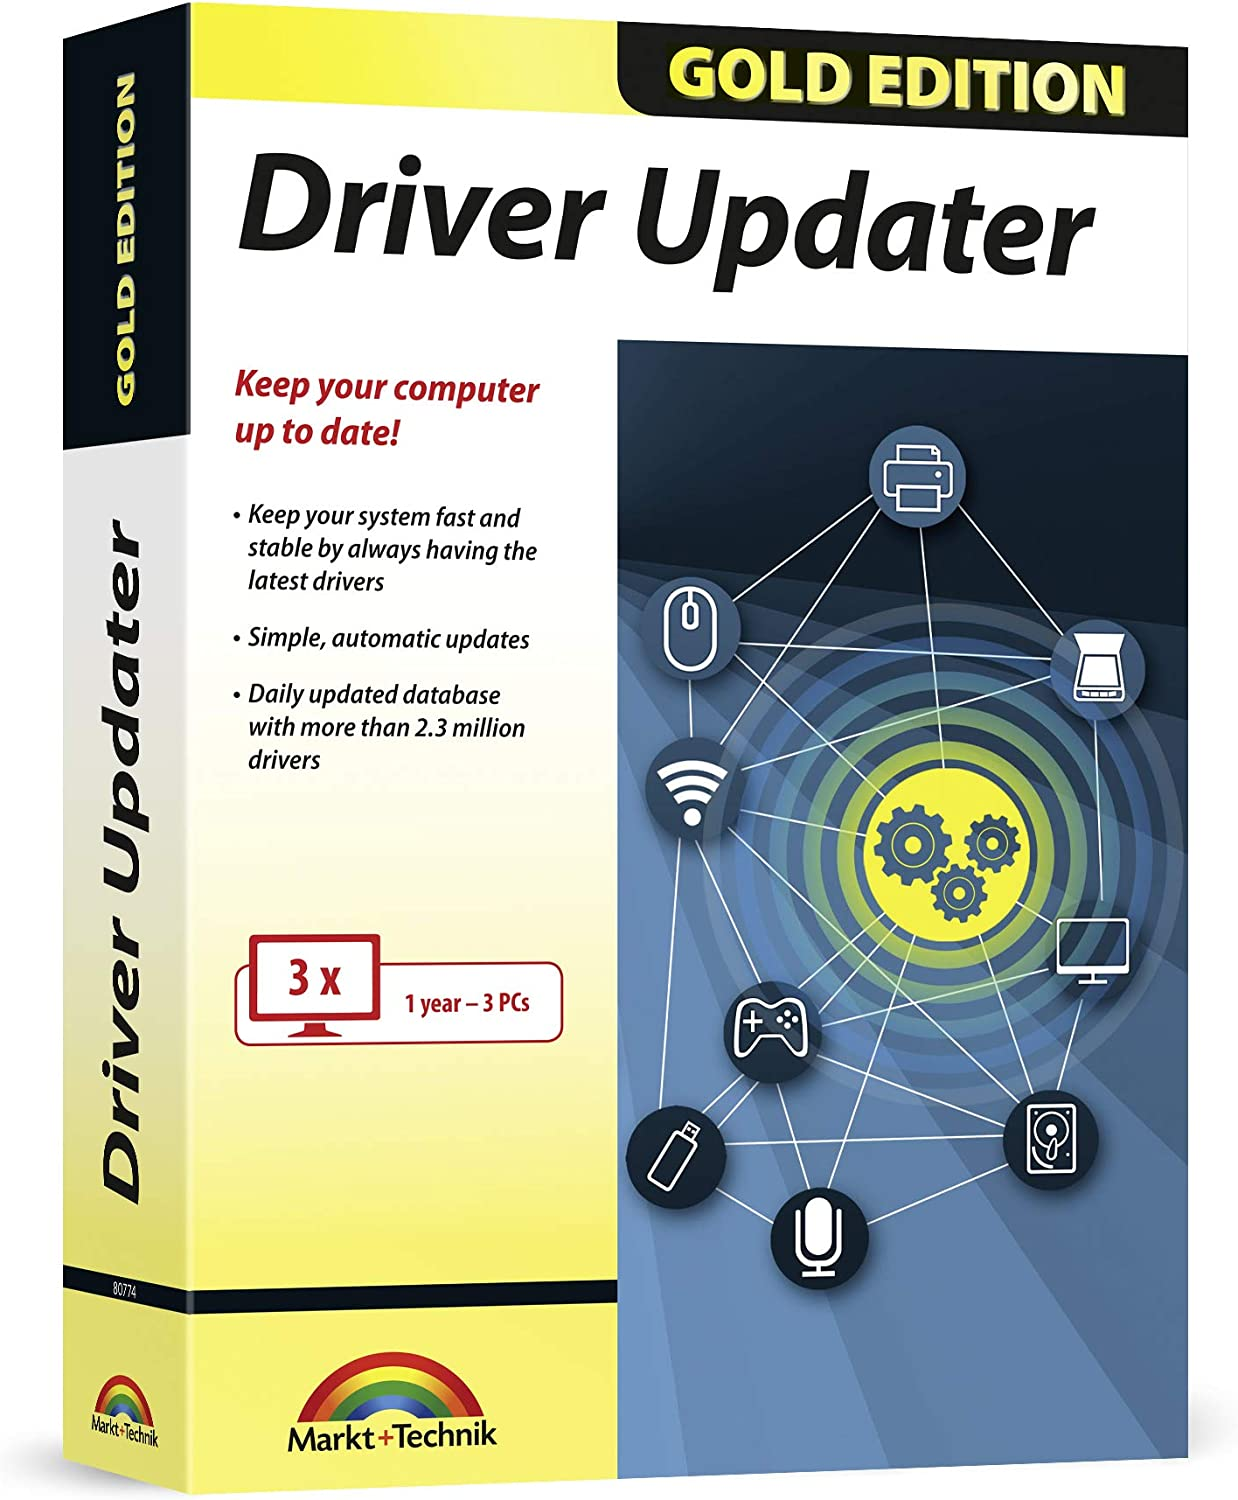 Driver Updater Gold Edition - always keep your drivers up-to-date for Windows 10, 8.1, 7 - keep your PC fast, safe and stable